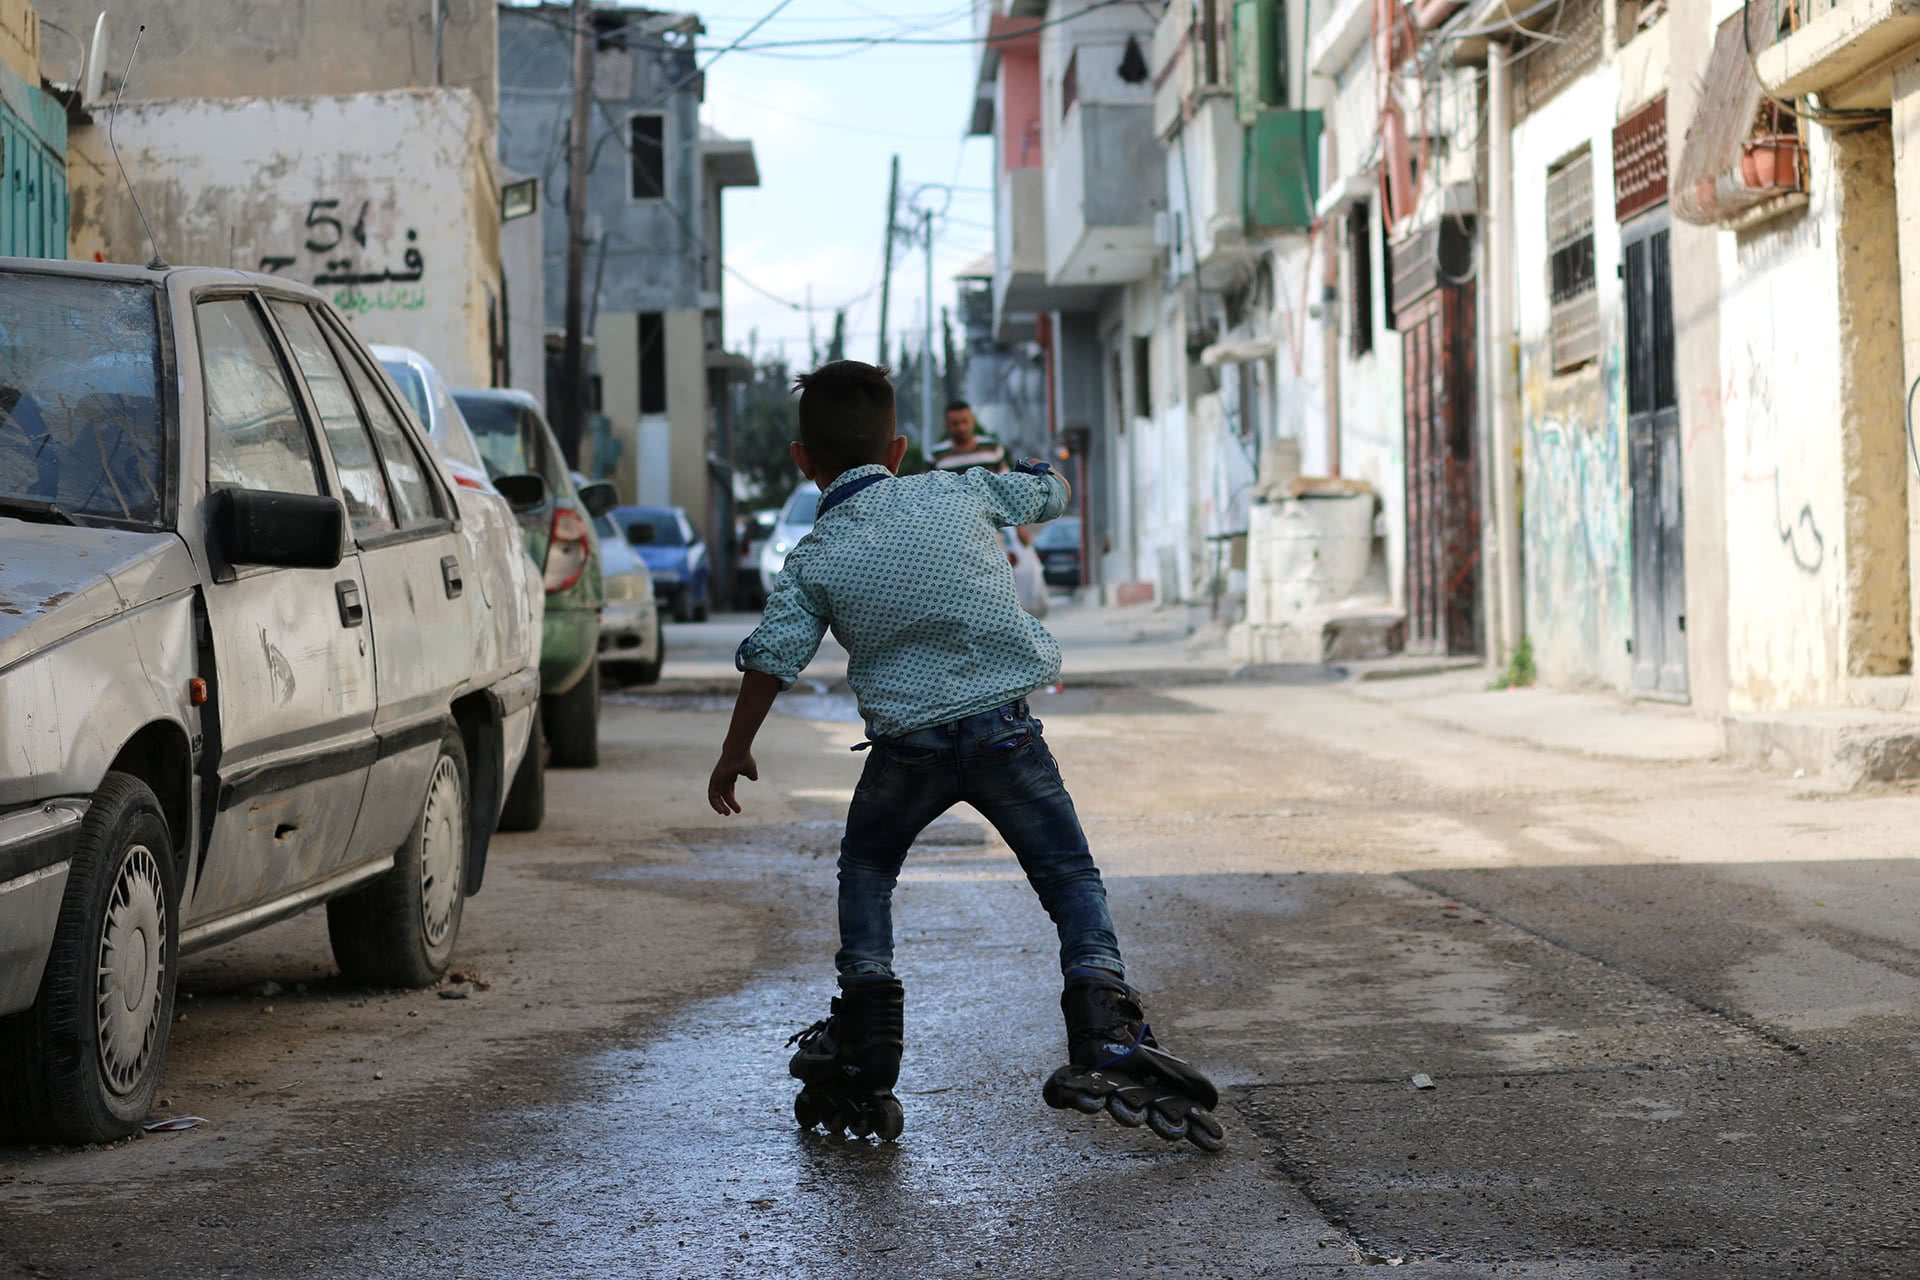 A child rollerblades down a small street in Arroub refugee camp. (Photo: DCIP / Ahmad Al-Bazz)